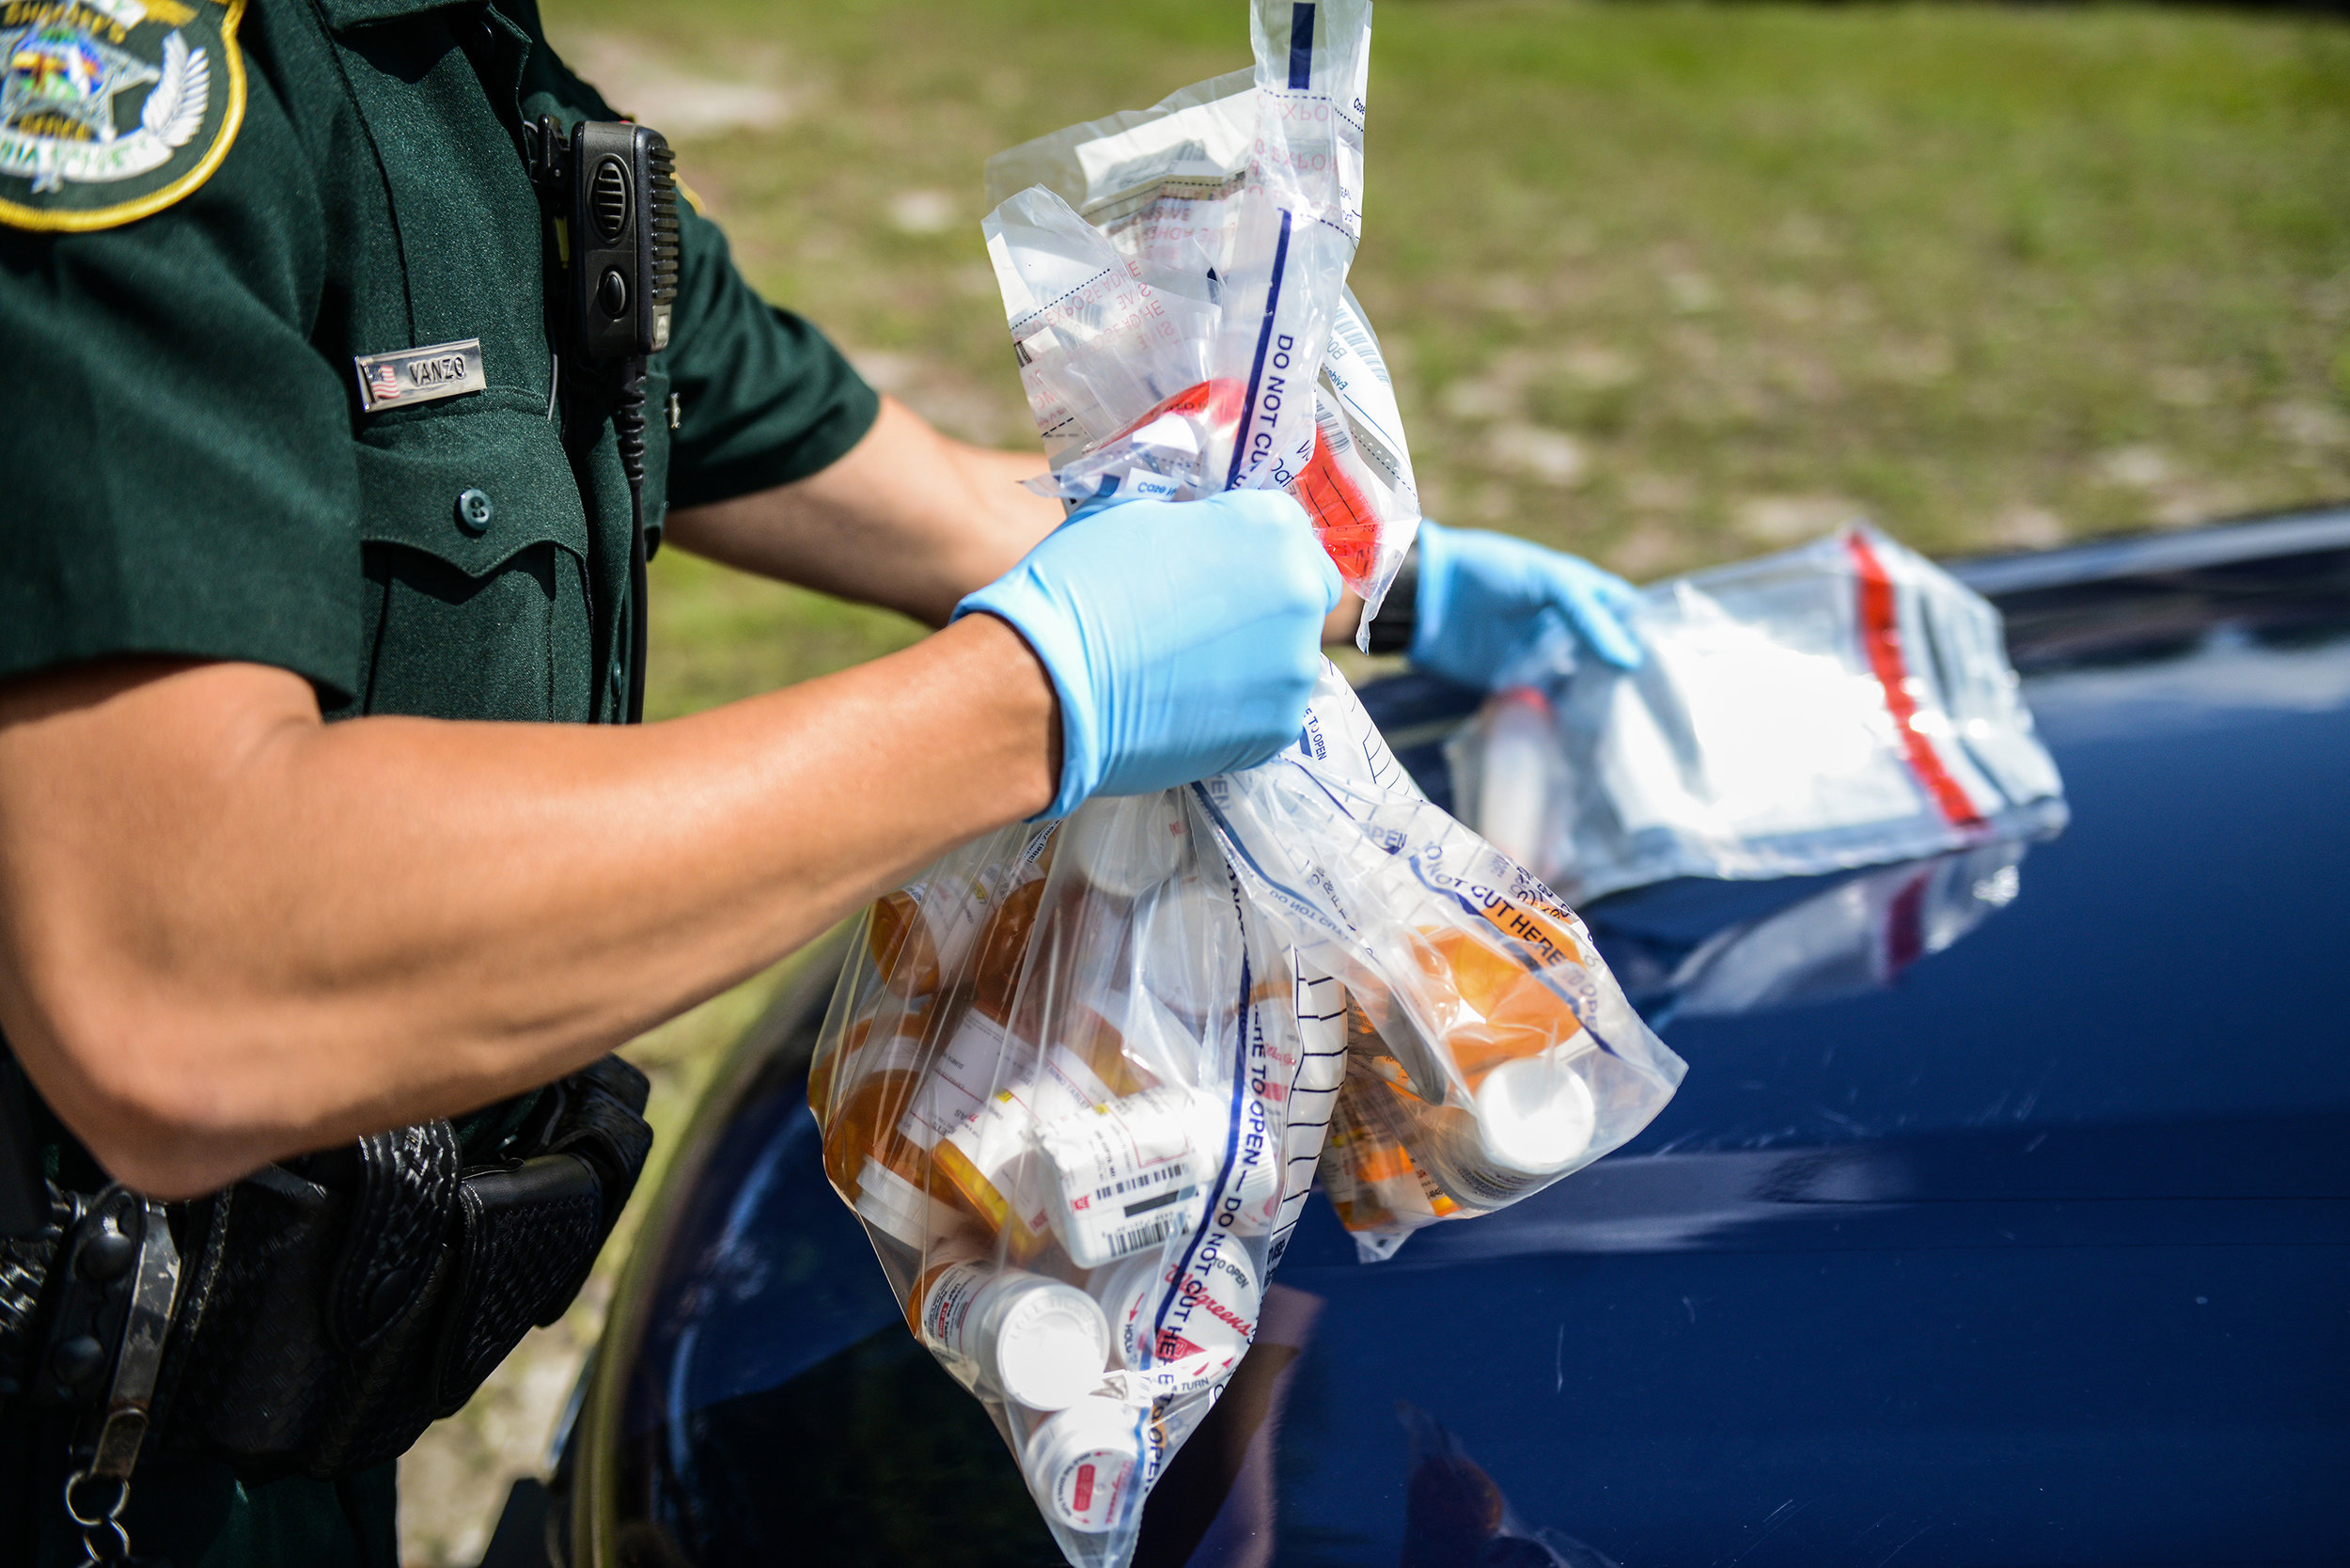 Volusia County sheriff's deputy Michael Vanzo holds five bags of medication and drug paraphernalia removed from Joshua Lacy's home. Investigators believe Lacy died after injecting heroin. Deltona on Friday, April 13, 2018.